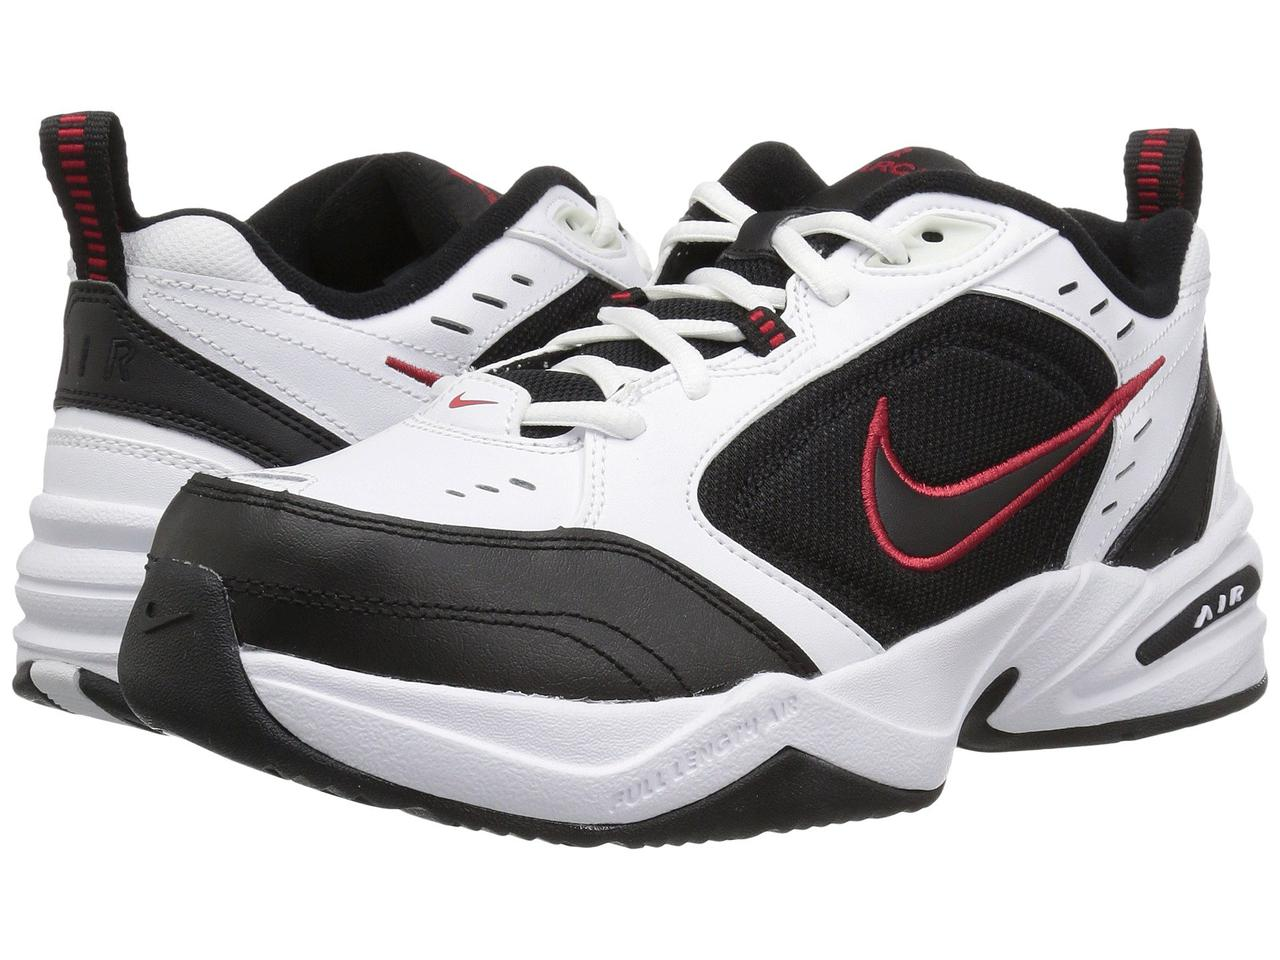 e31cf980f4f2 Кроссовки Кеды (Оригинал) Nike Air Monarch IV White Black-Varsity ...